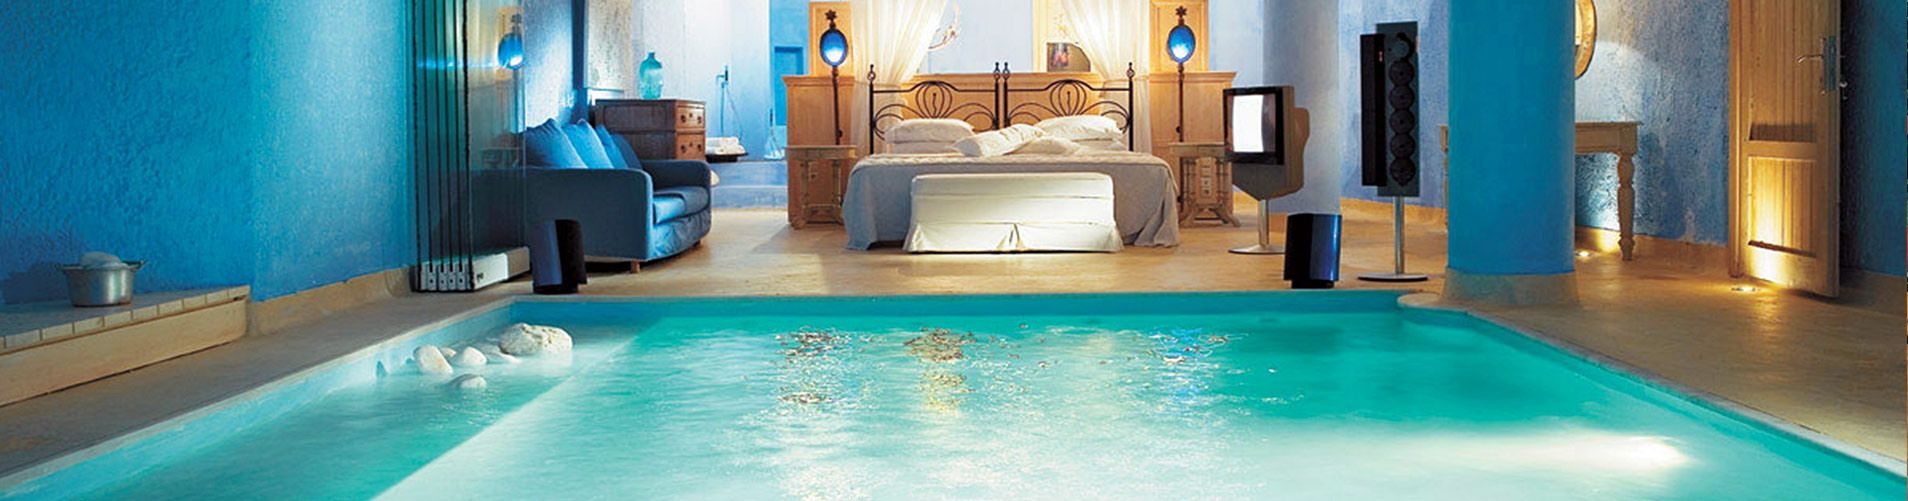 Luxury Bedroom Rectangle Swimming Pool